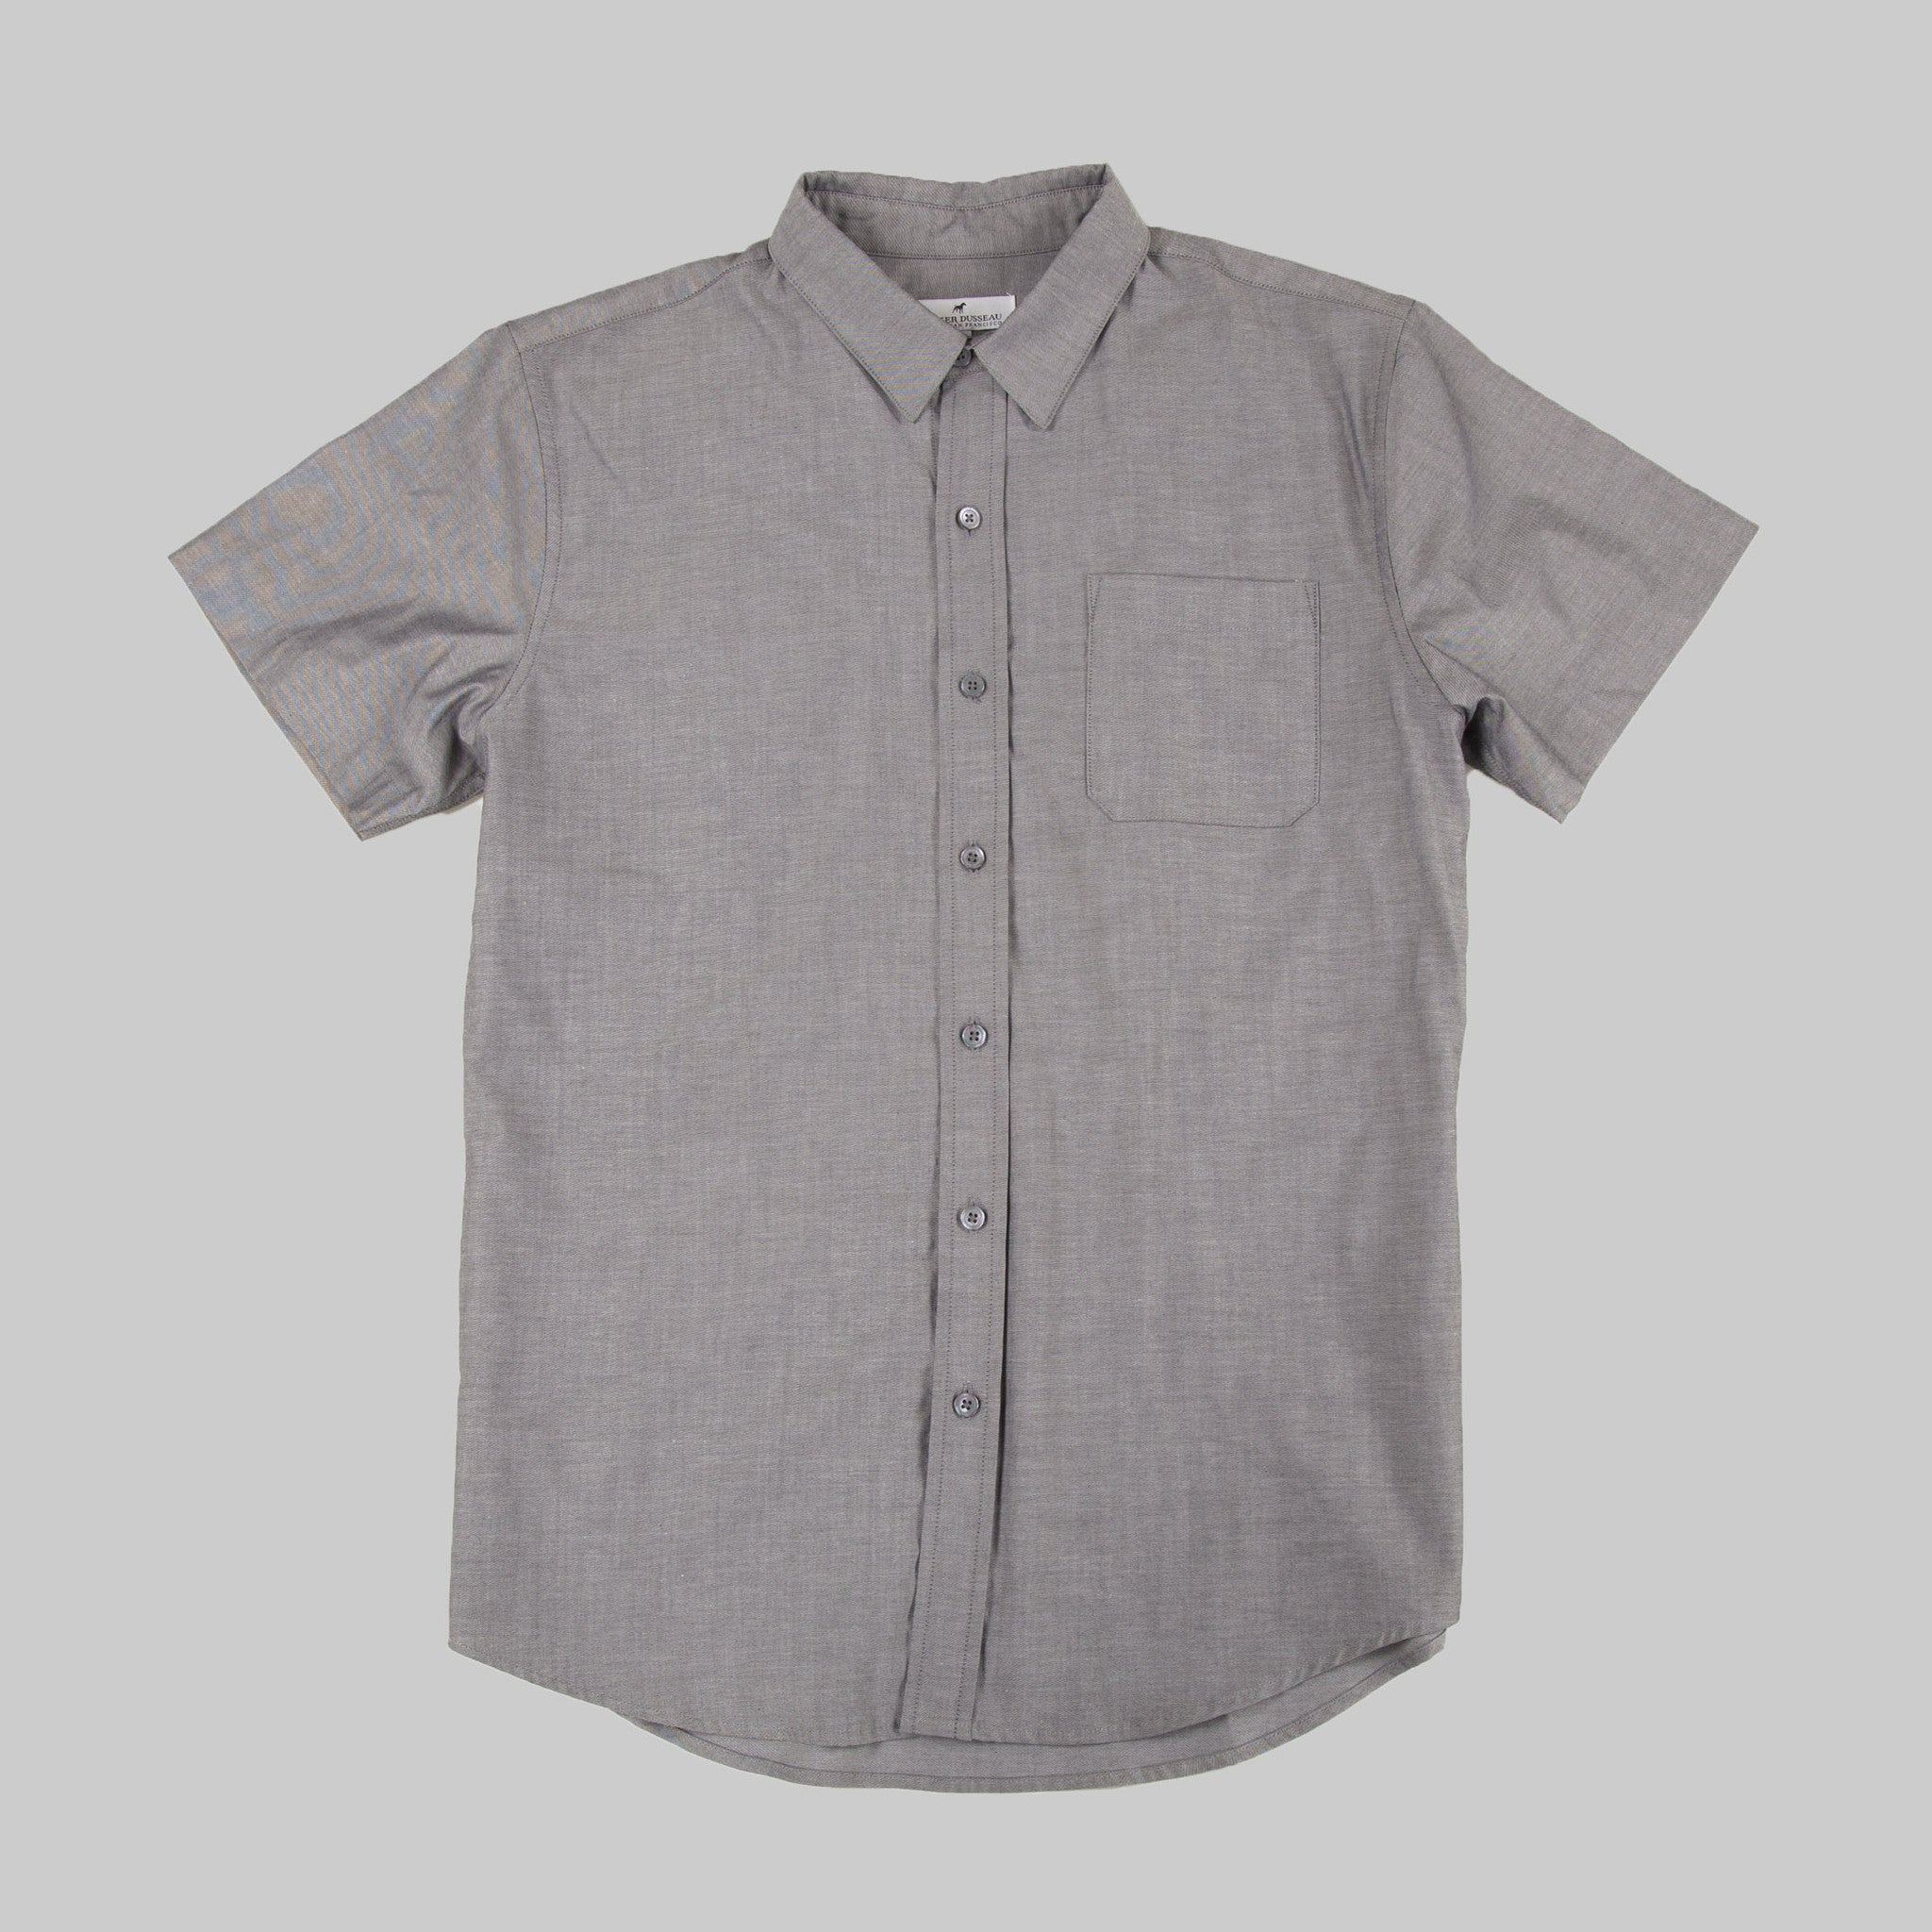 Five Day Wool / Cotton Button Up - Charcoal Dress Shirt, Short Sleeve- Parker Dusseau : Functional Menswear Essentials for the Always Ready Lifestyle. Based in San Francisco, California